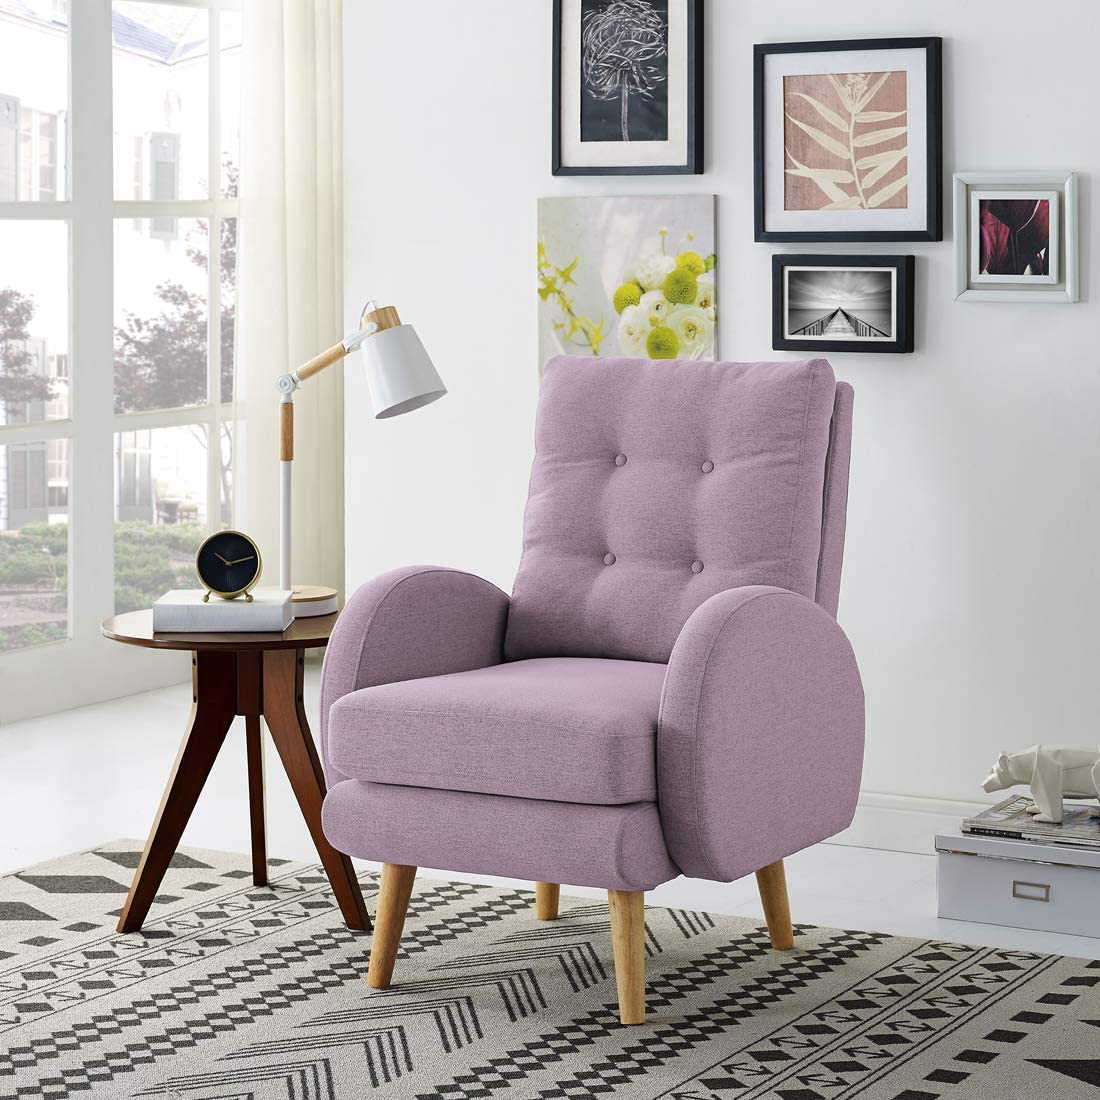 Lohoms Mid-Century Modern Accent Chair Tufted Button Fabric Uphlostered Curved Arm Chair Comfy High Back Chair Single Sofa Purple